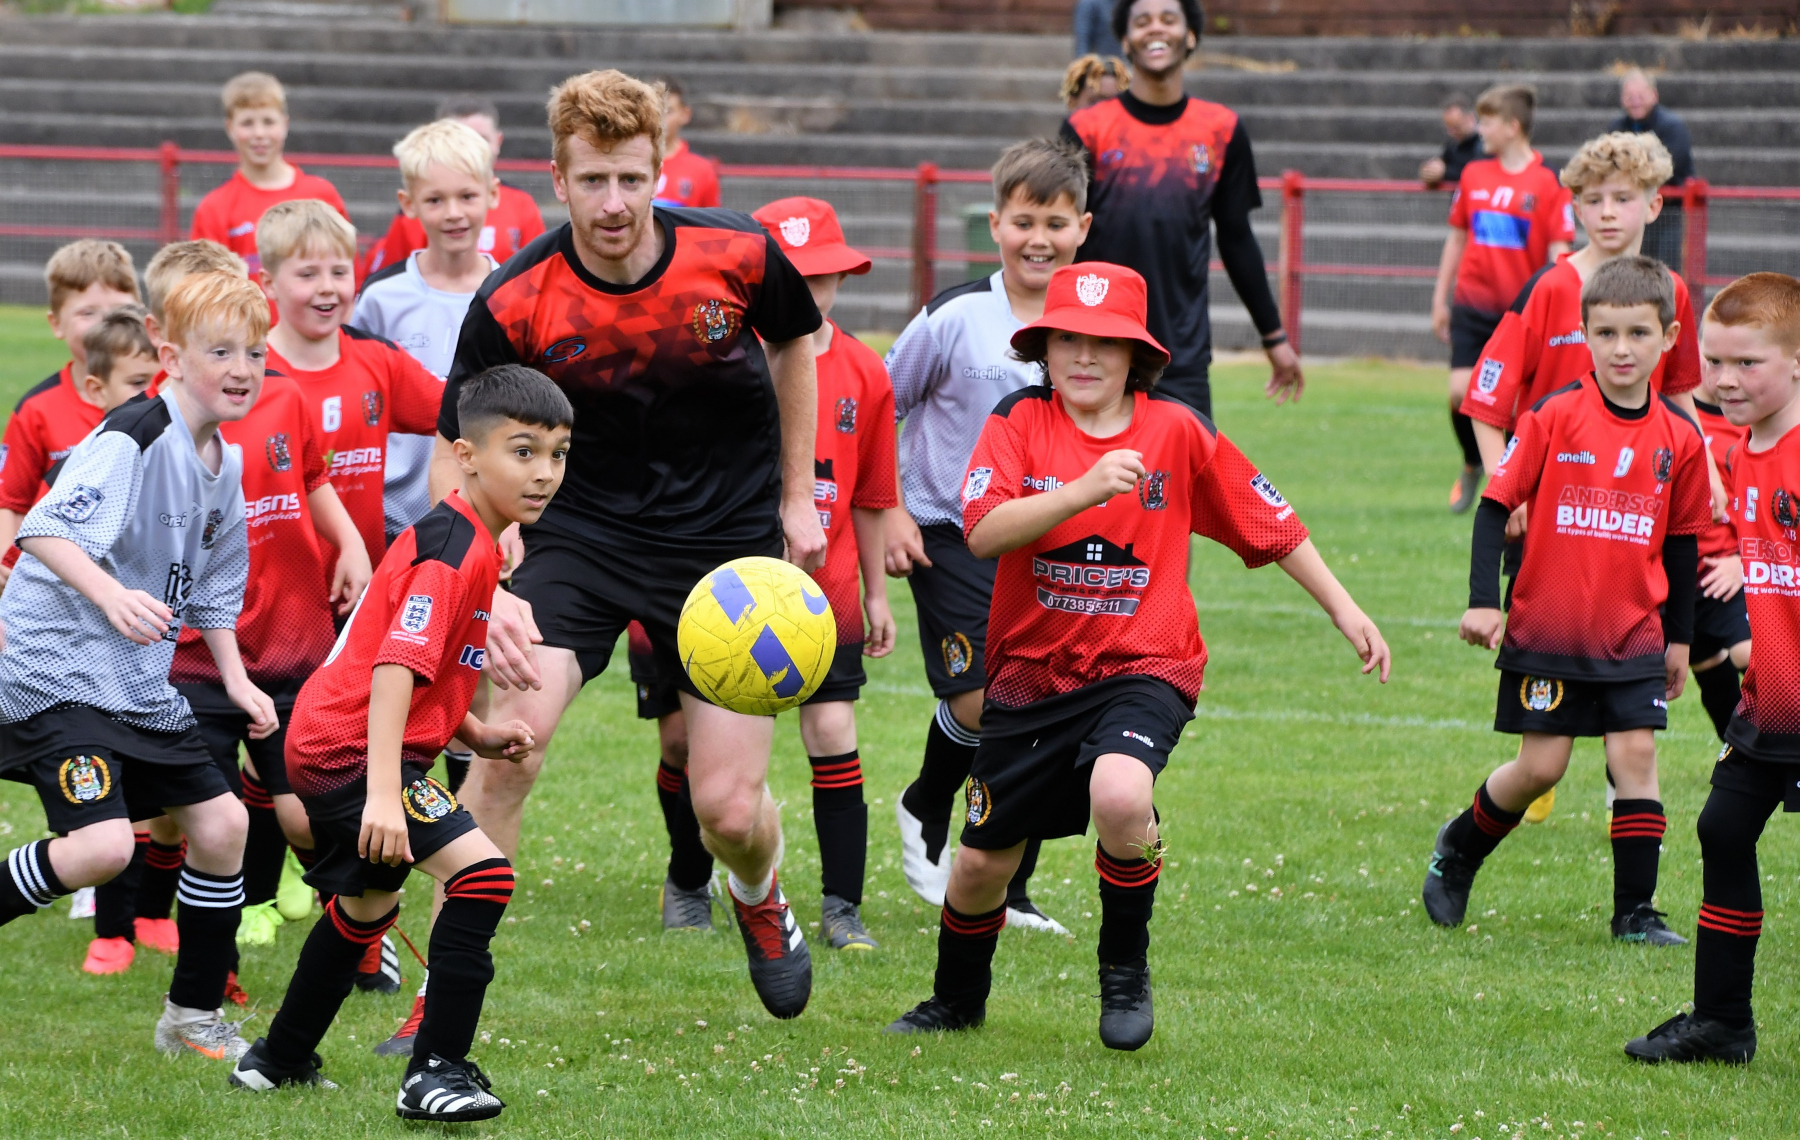 Reds Festival of Football – Scott Allison tries to find a way past the Reds juniors